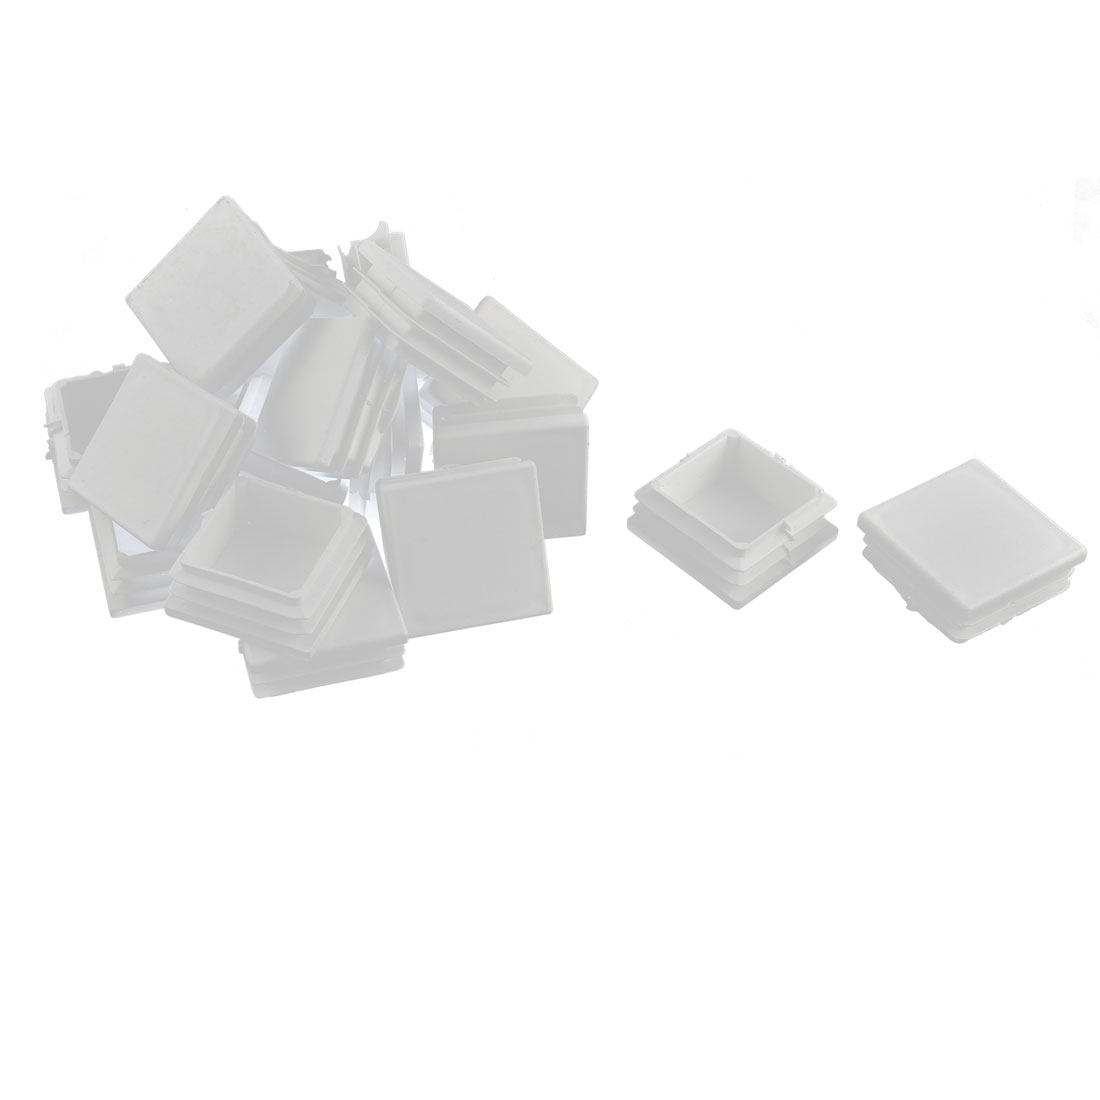 Plastic Square Tube Pipe Inserts End Blanking Caps White 38mmx38mm 20 Pcs